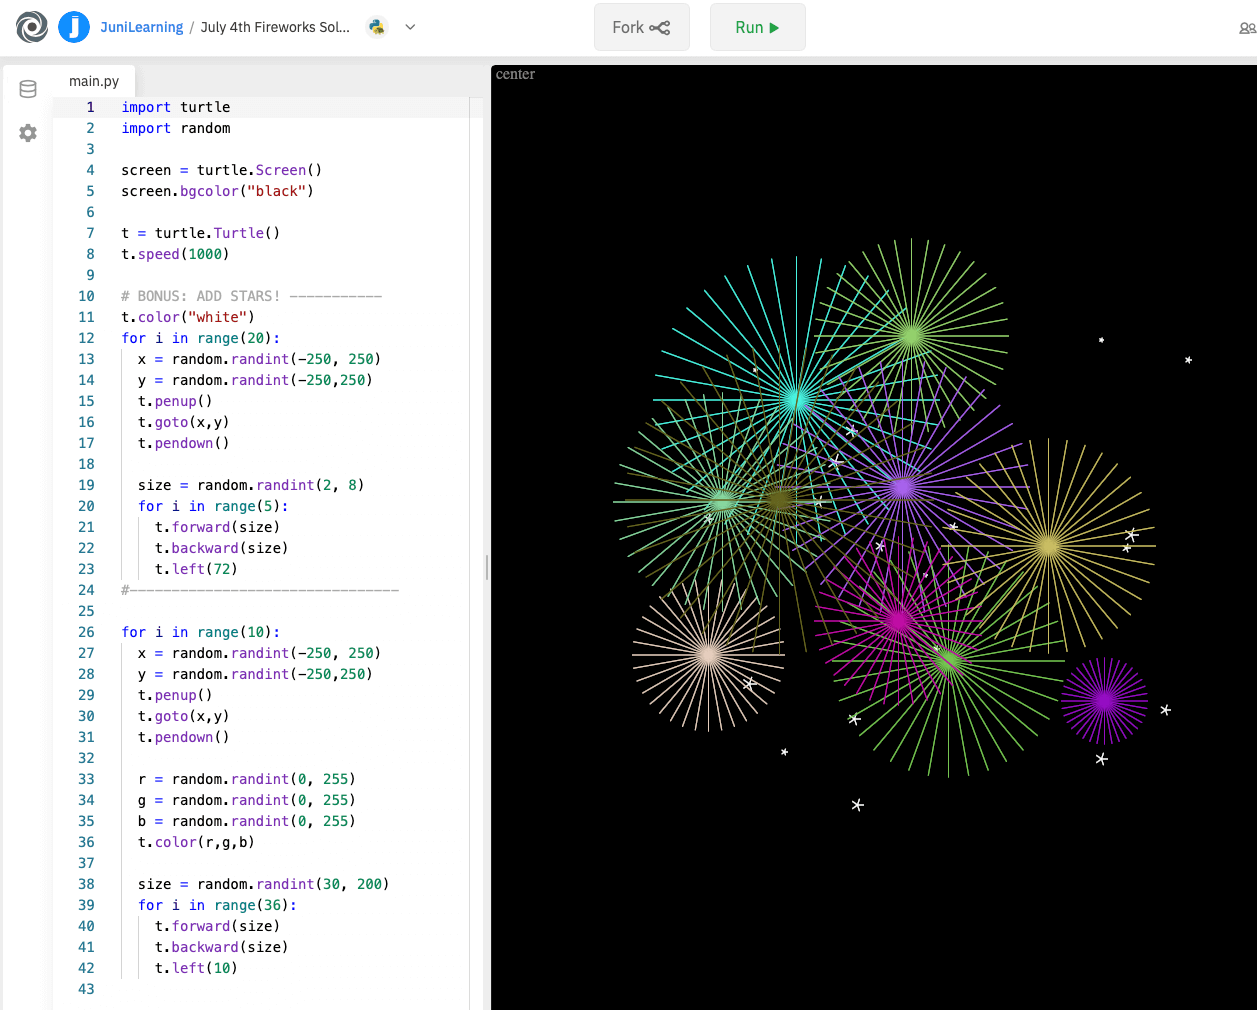 An extended Python turtle coding project with fireworks